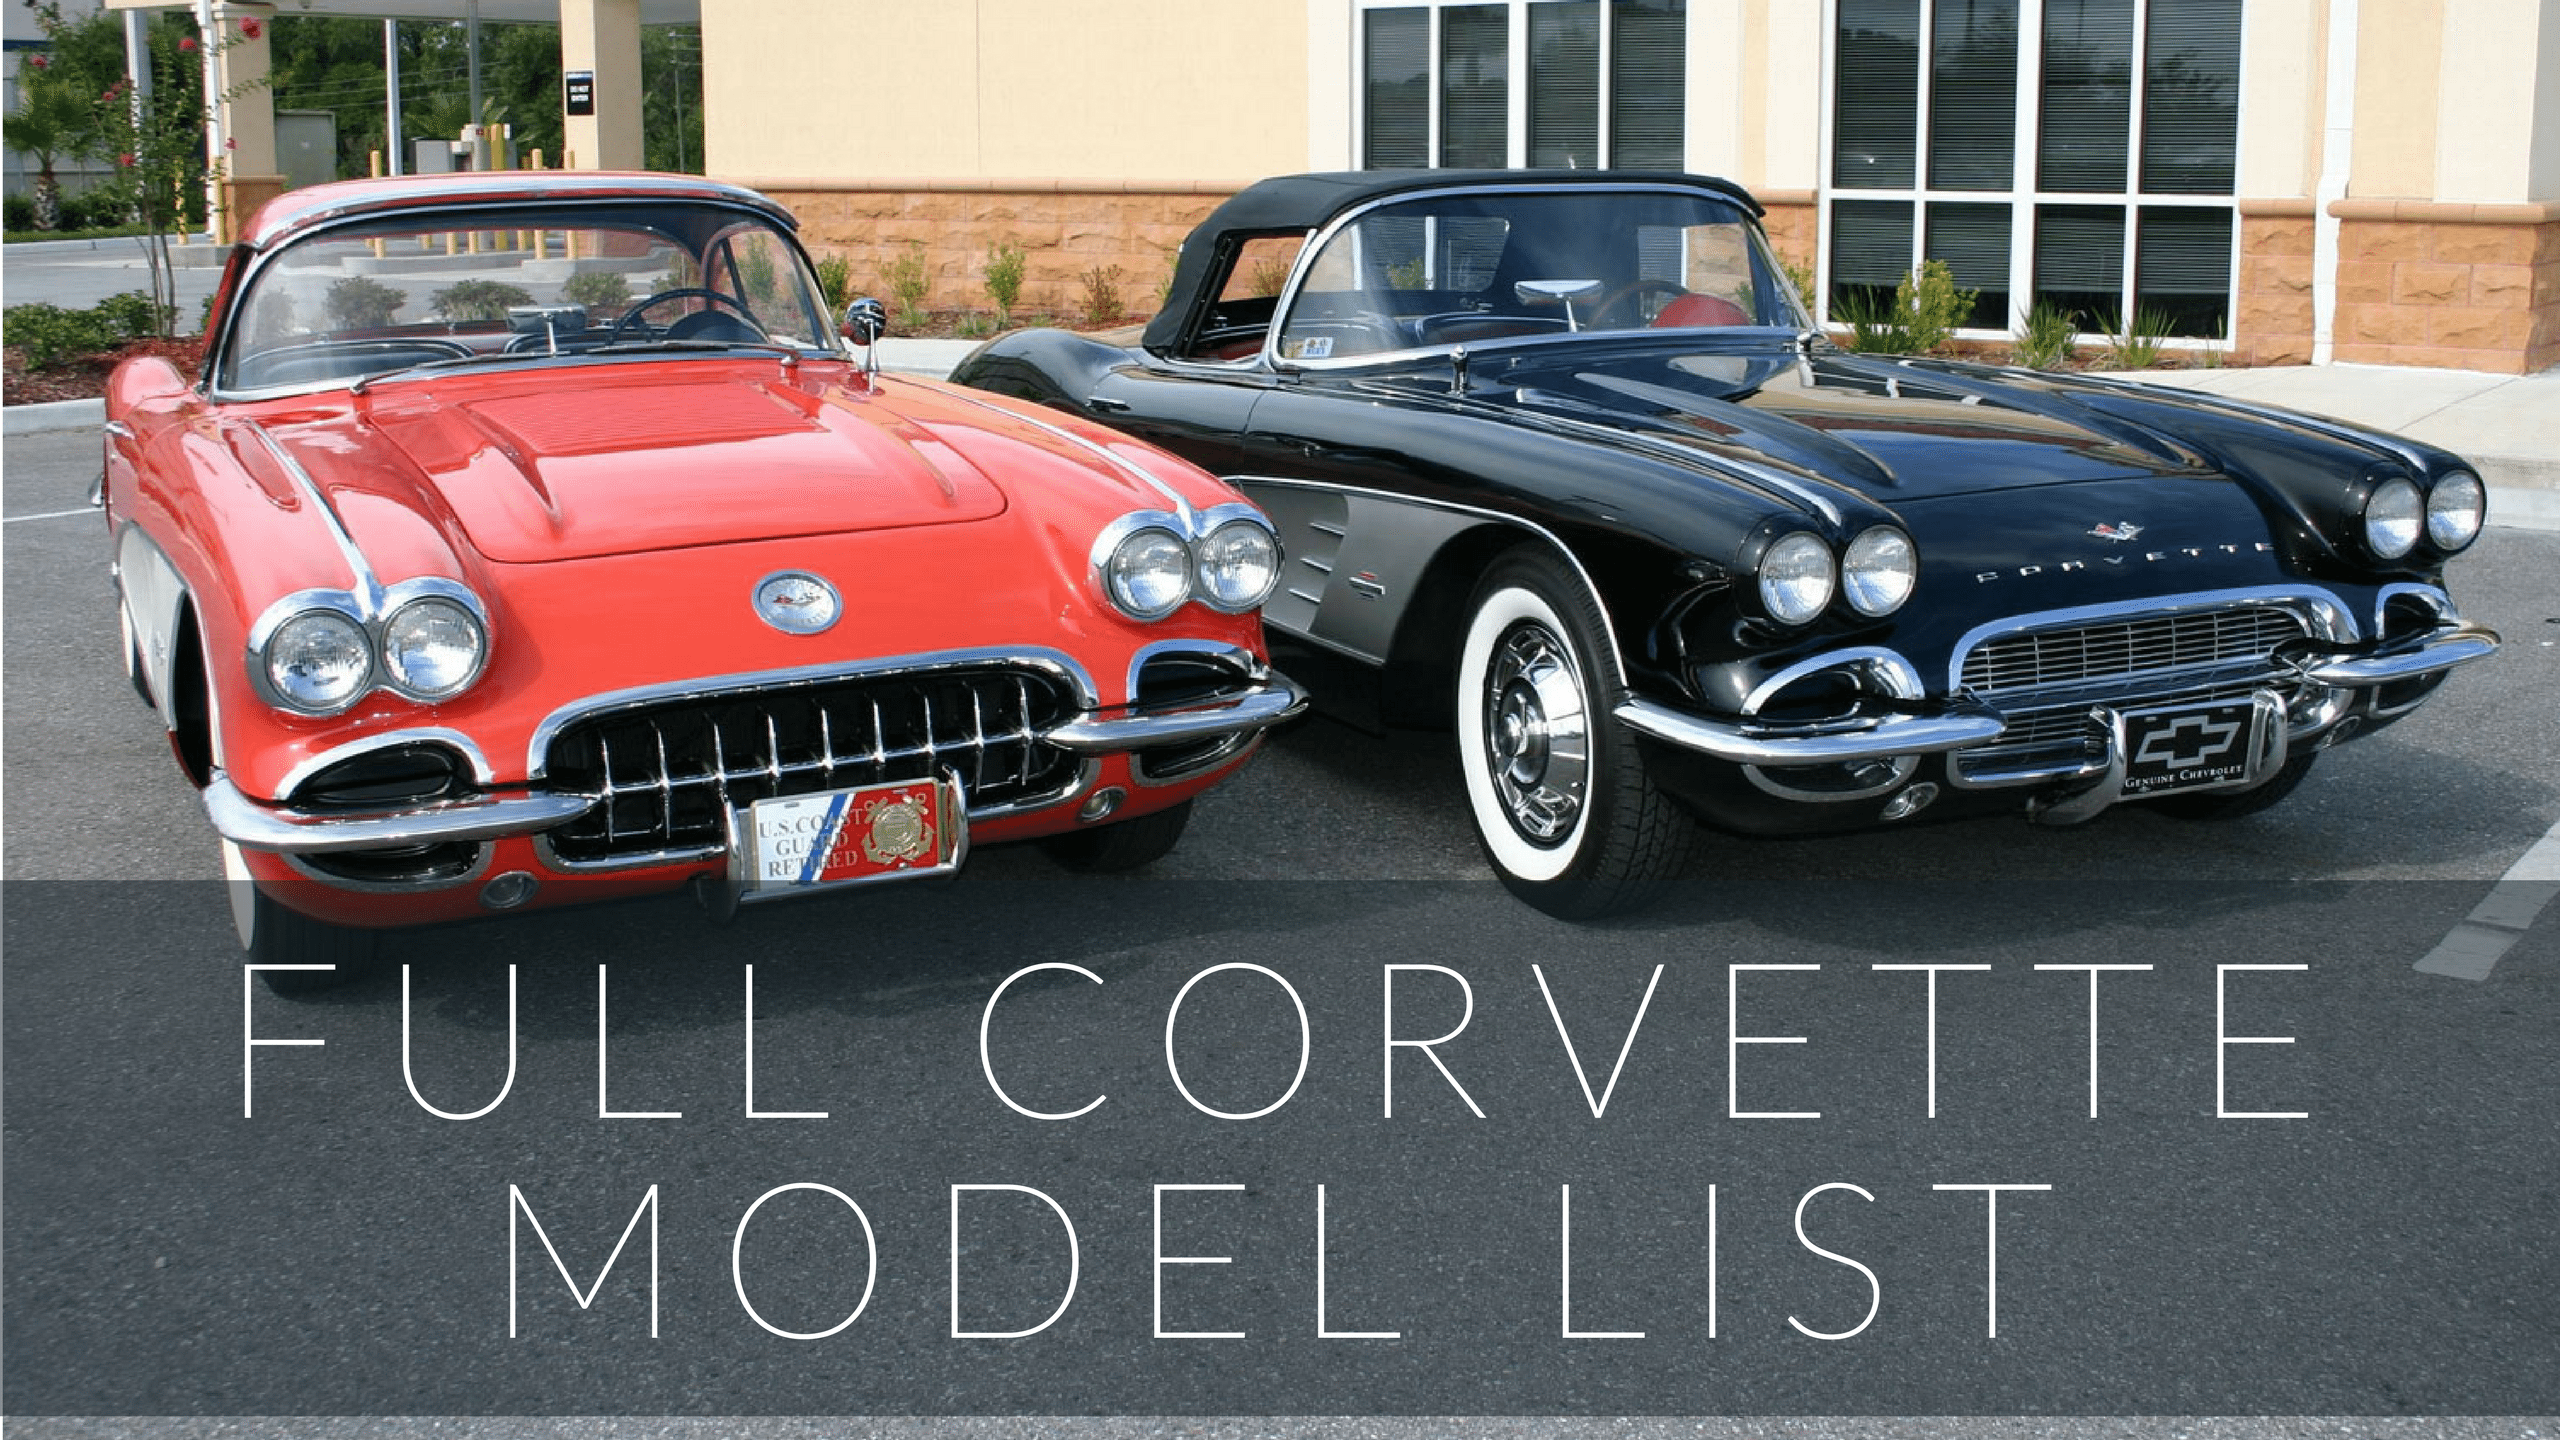 Full Corvette Model List